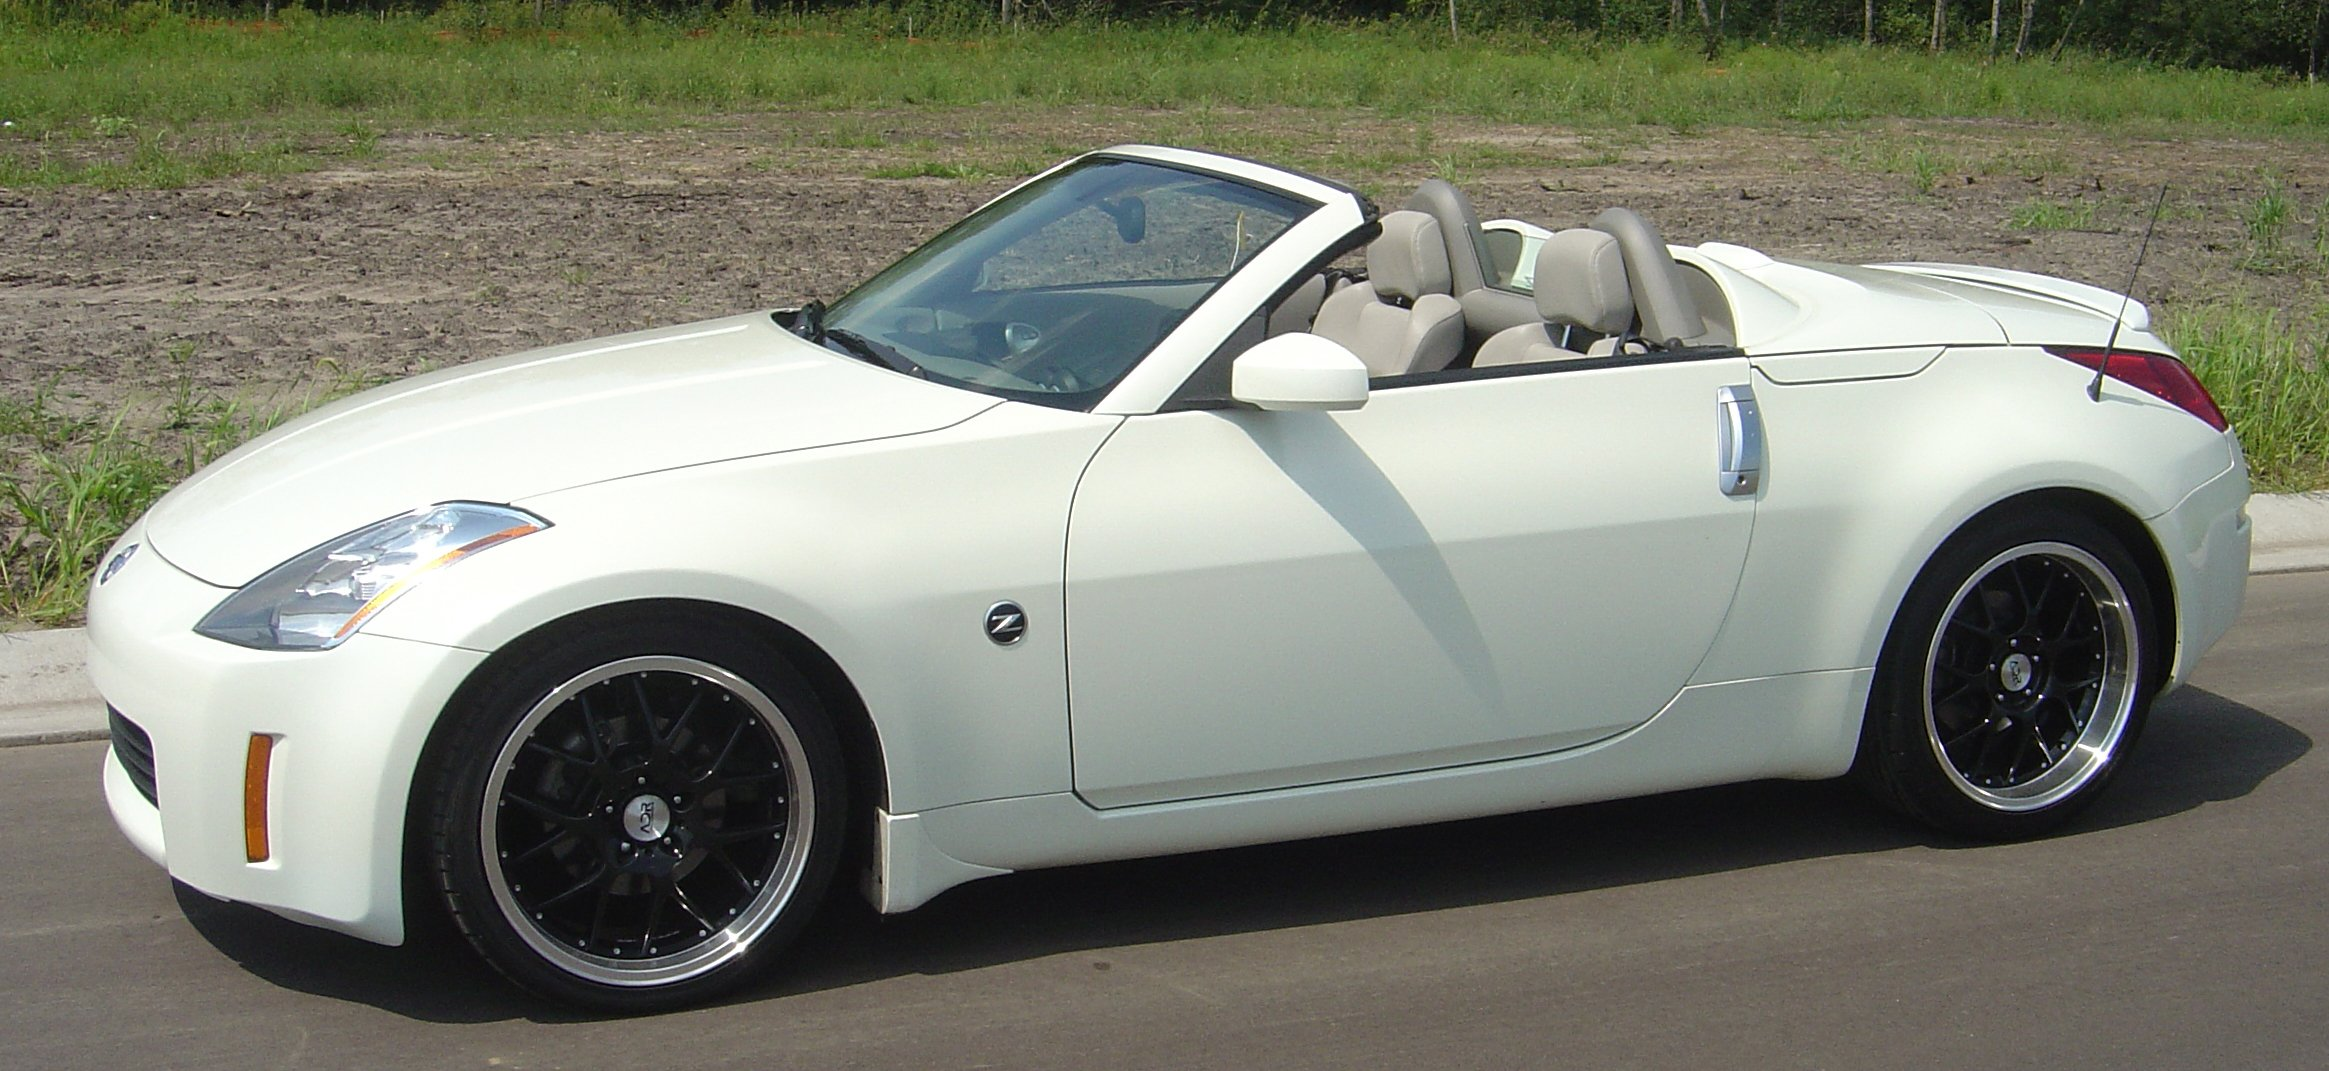 Advise needed- coupe or roadster - Page 2 - Nissan 350Z Forum ...